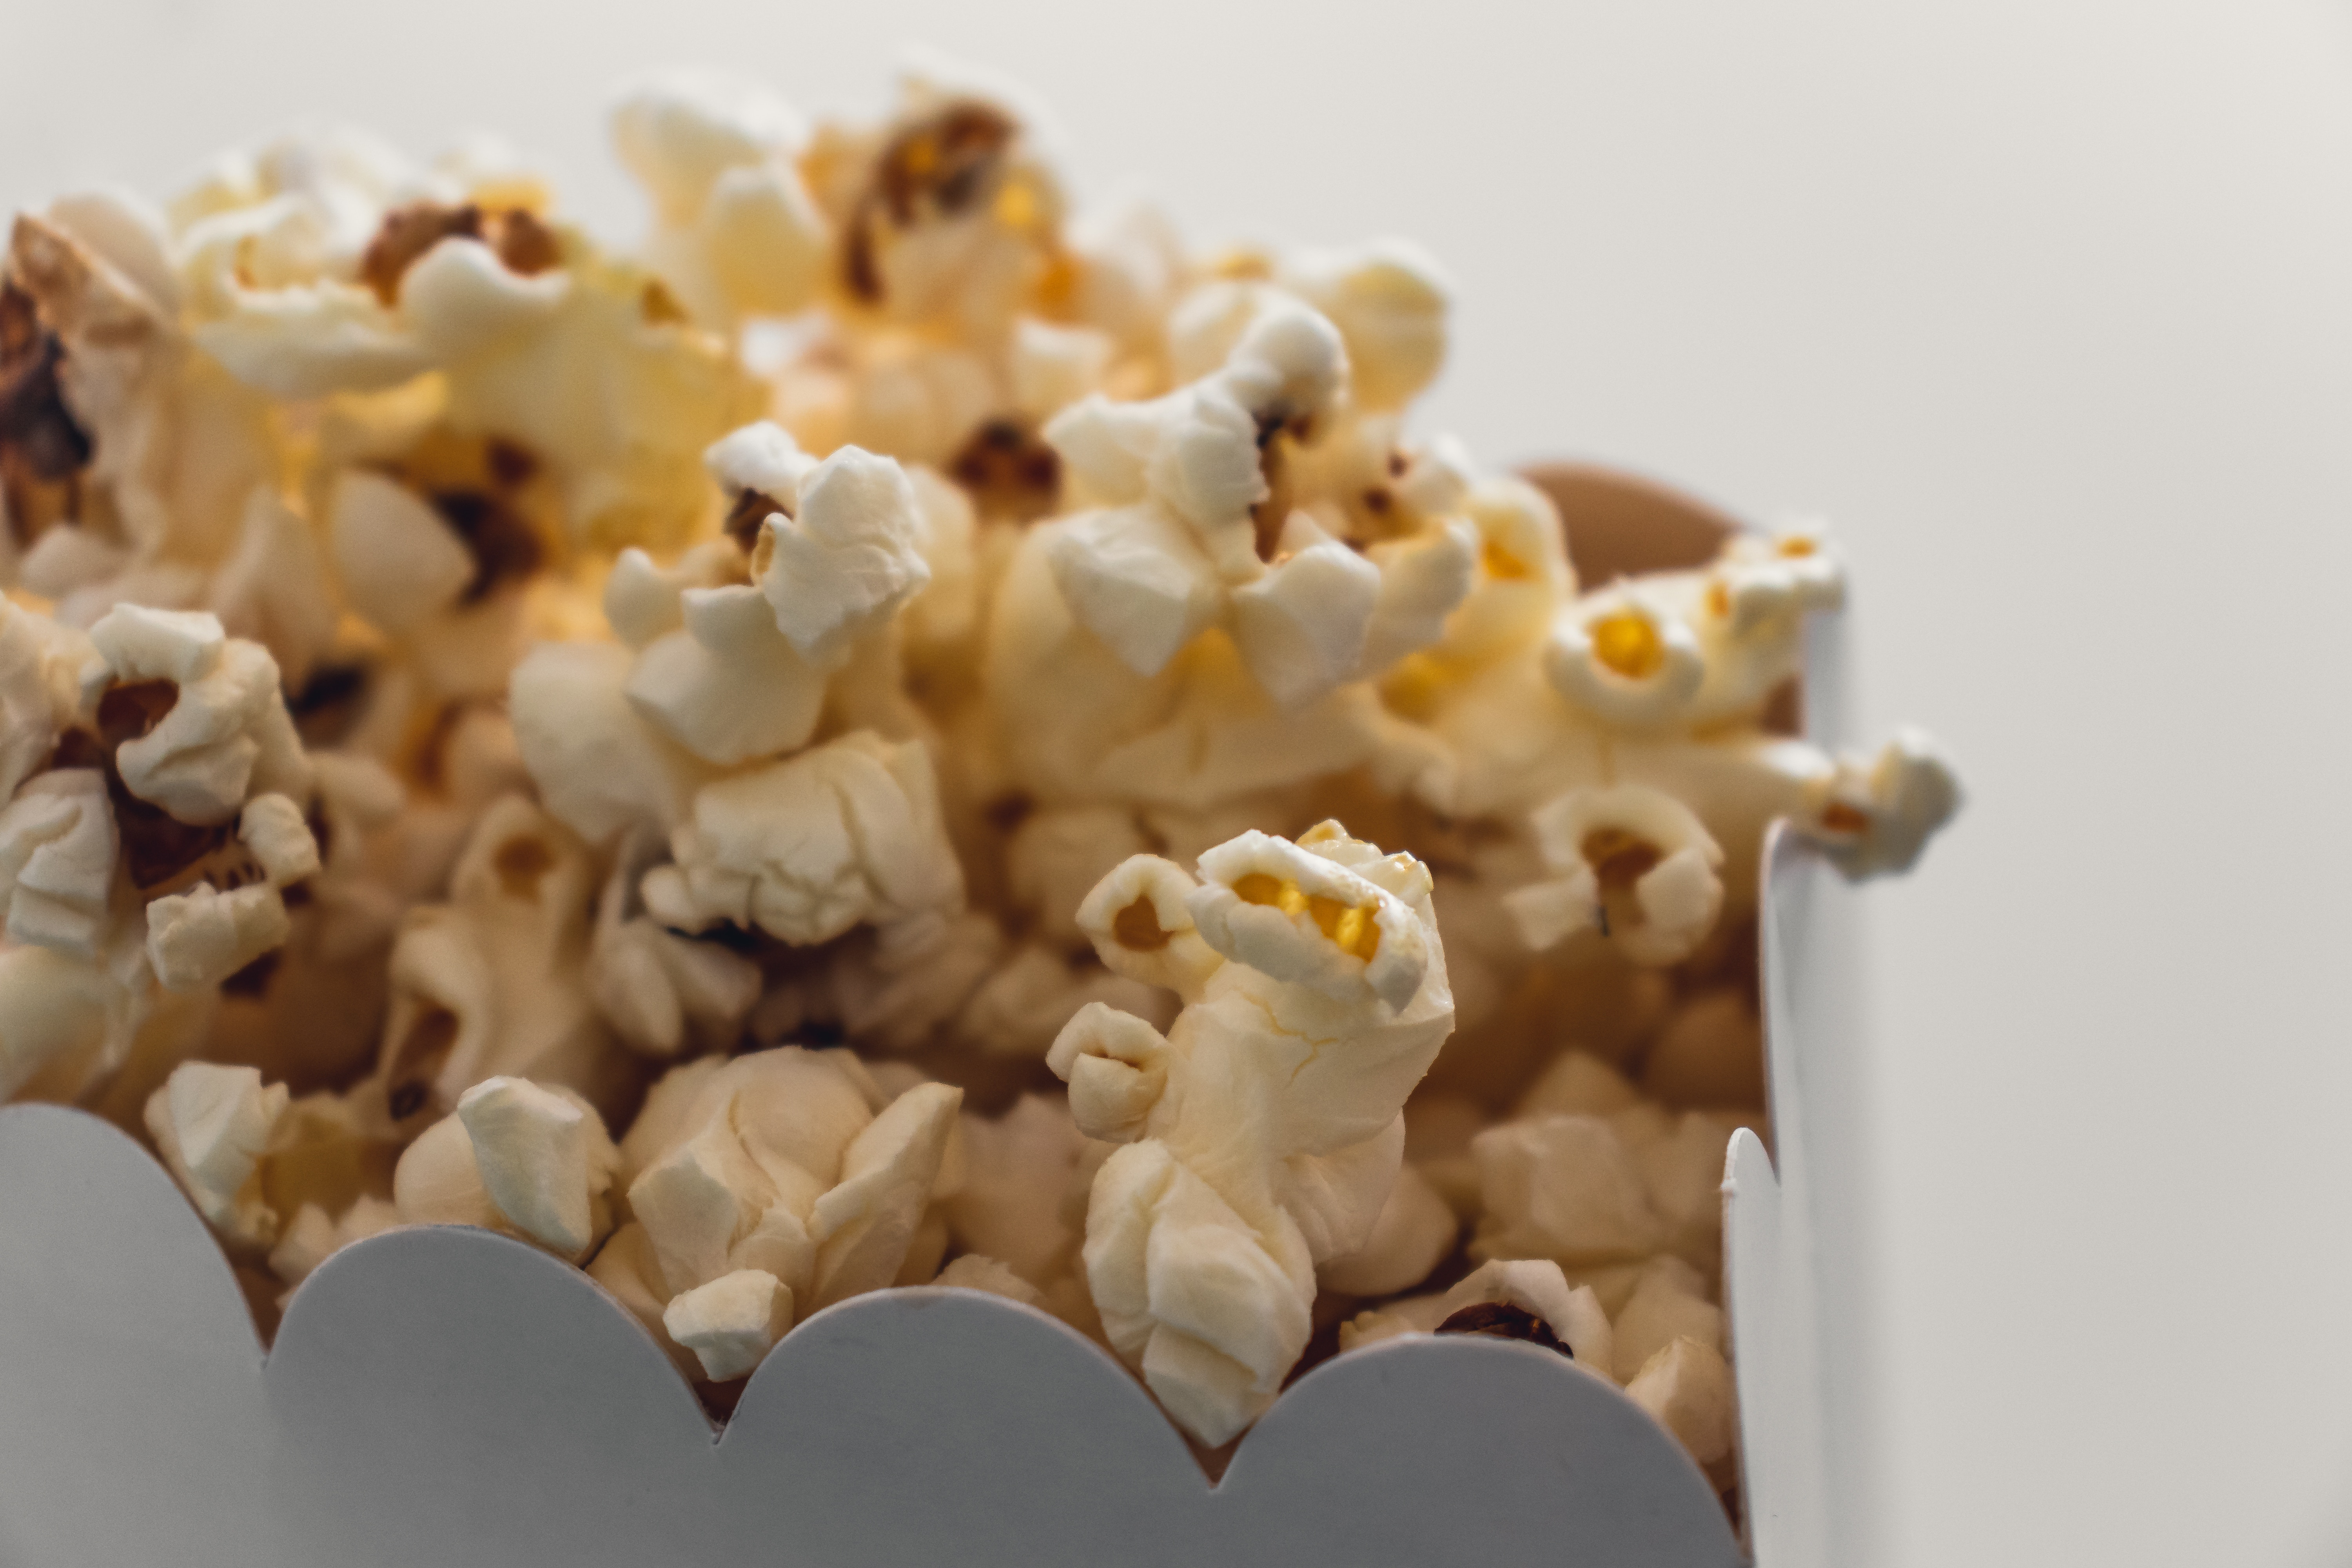 Popcorn - Eating or Snacking Messily